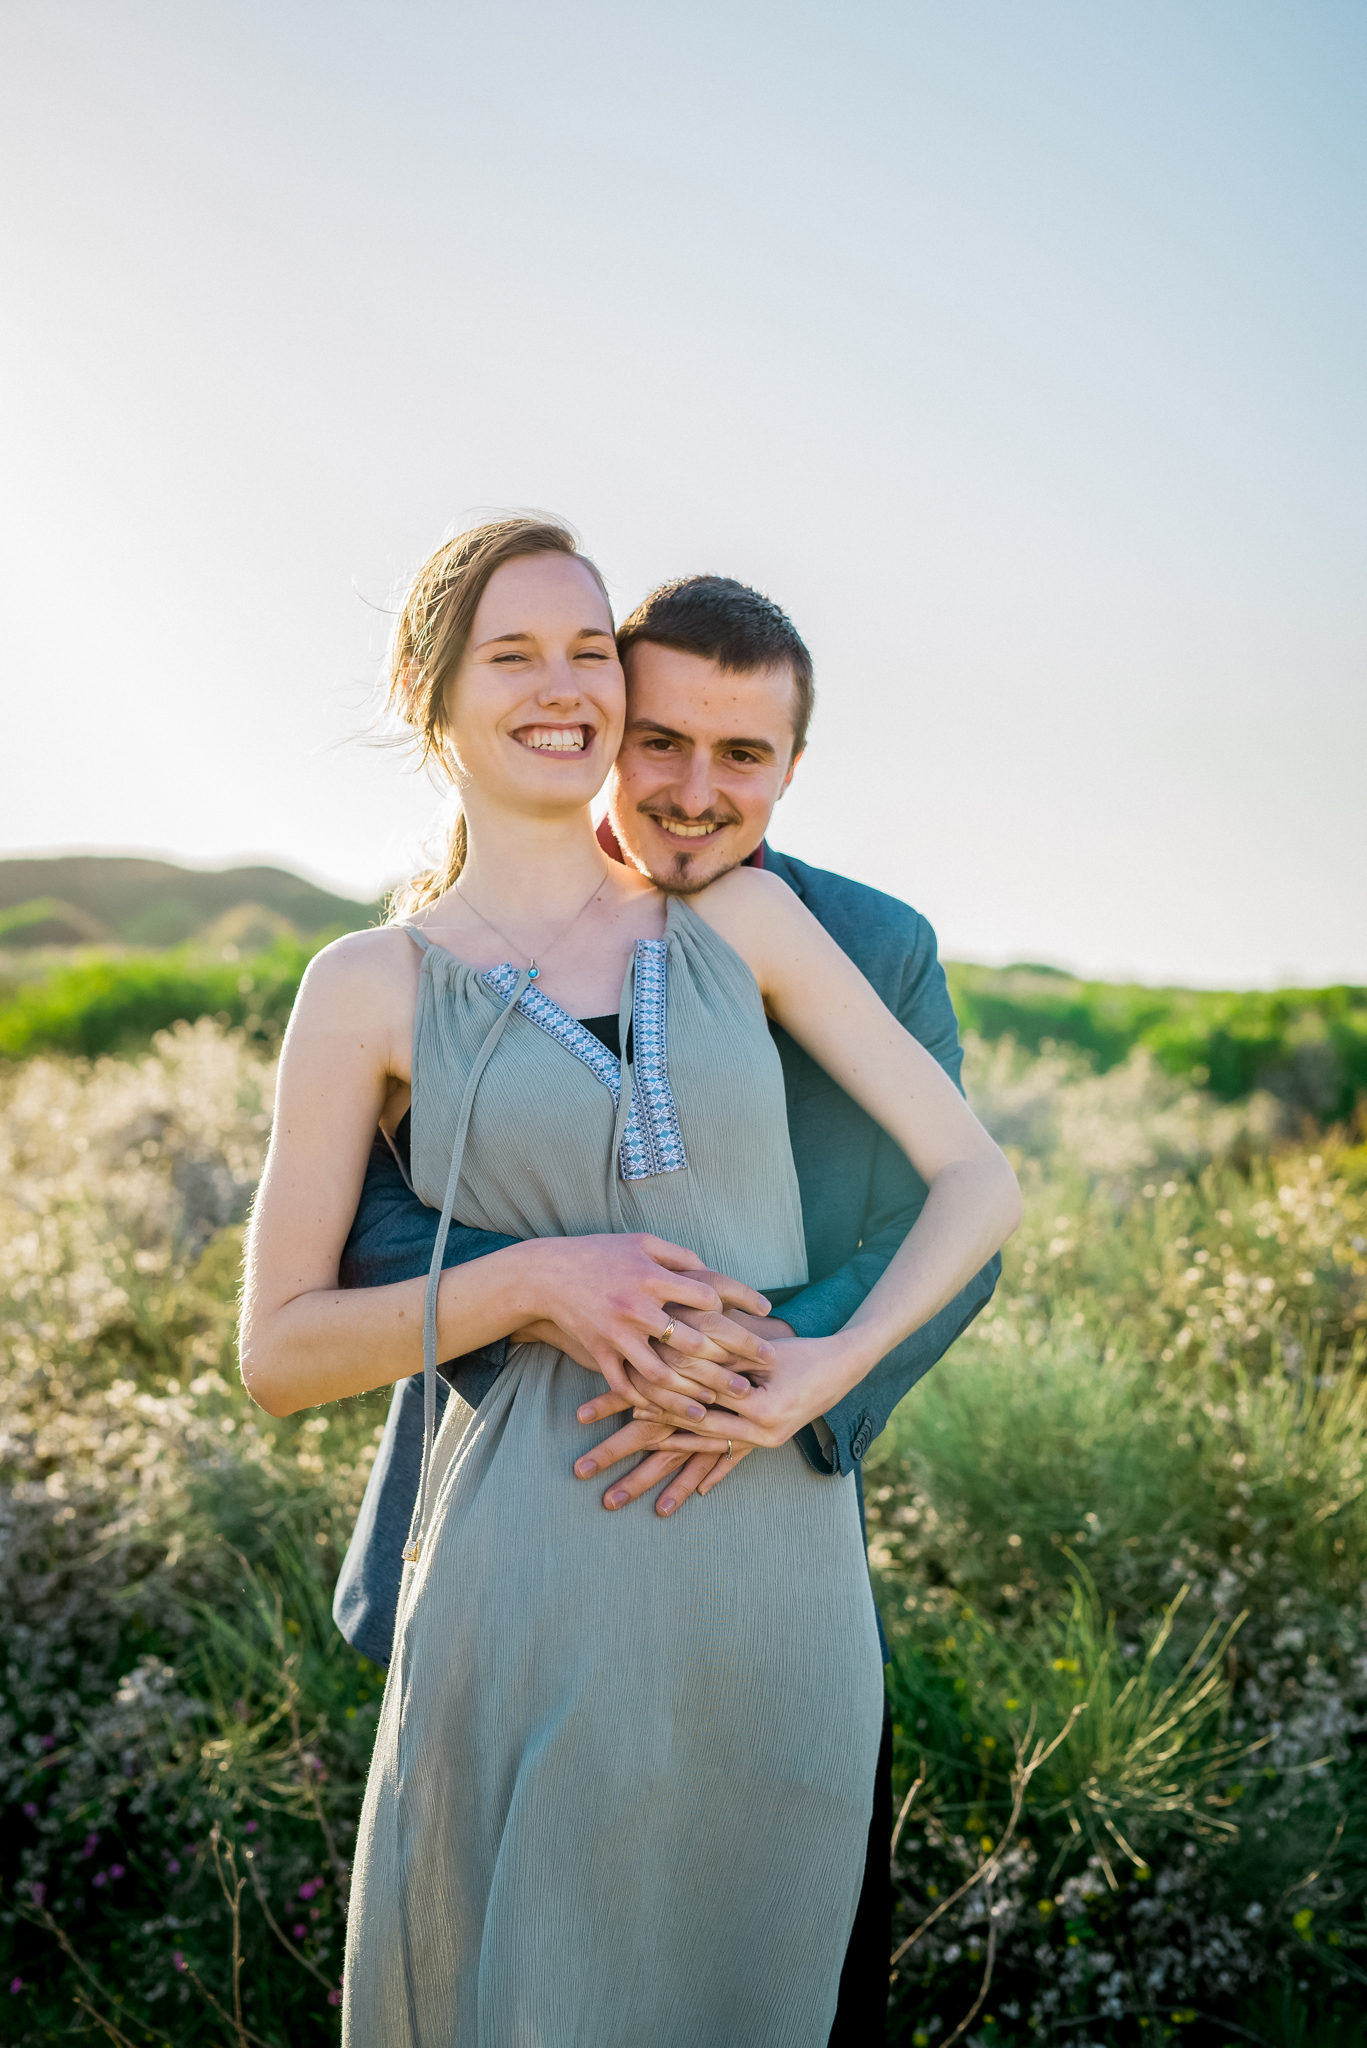 Cliffside-beach-engagement-session-hadera-israel-kate-giryes-photography-9095.jpg